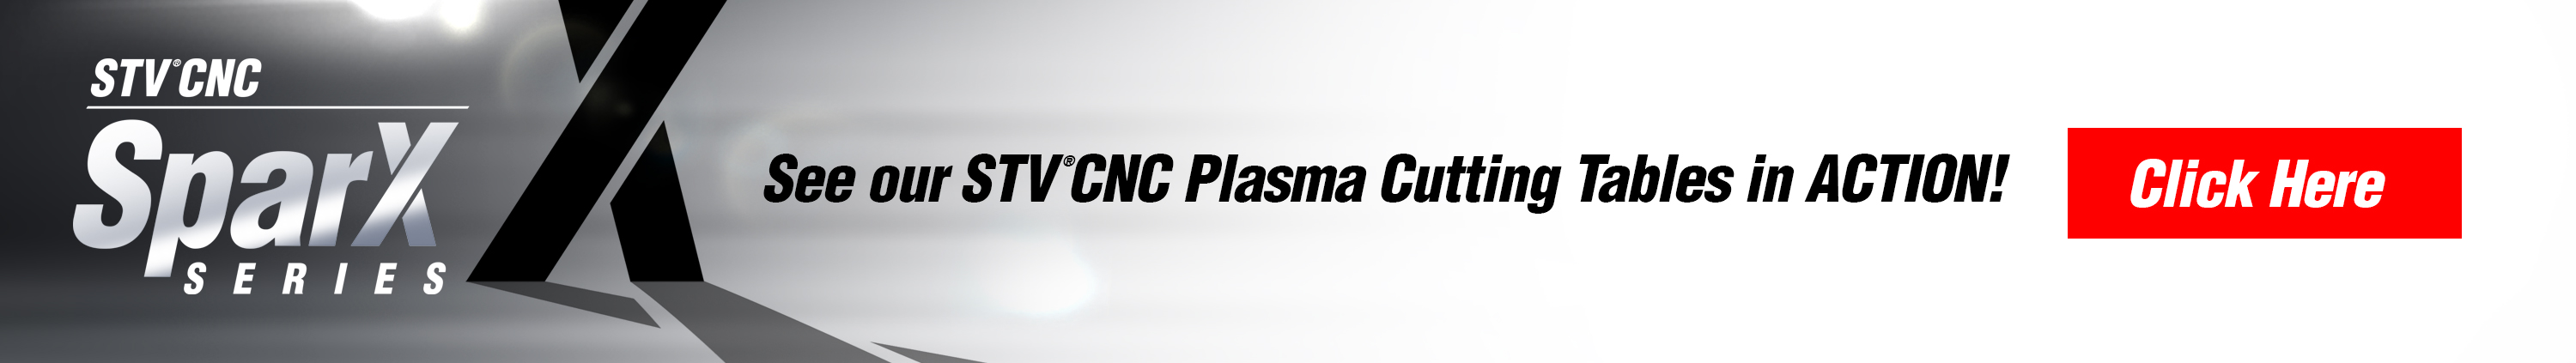 Watch our automated plasma cutters in action